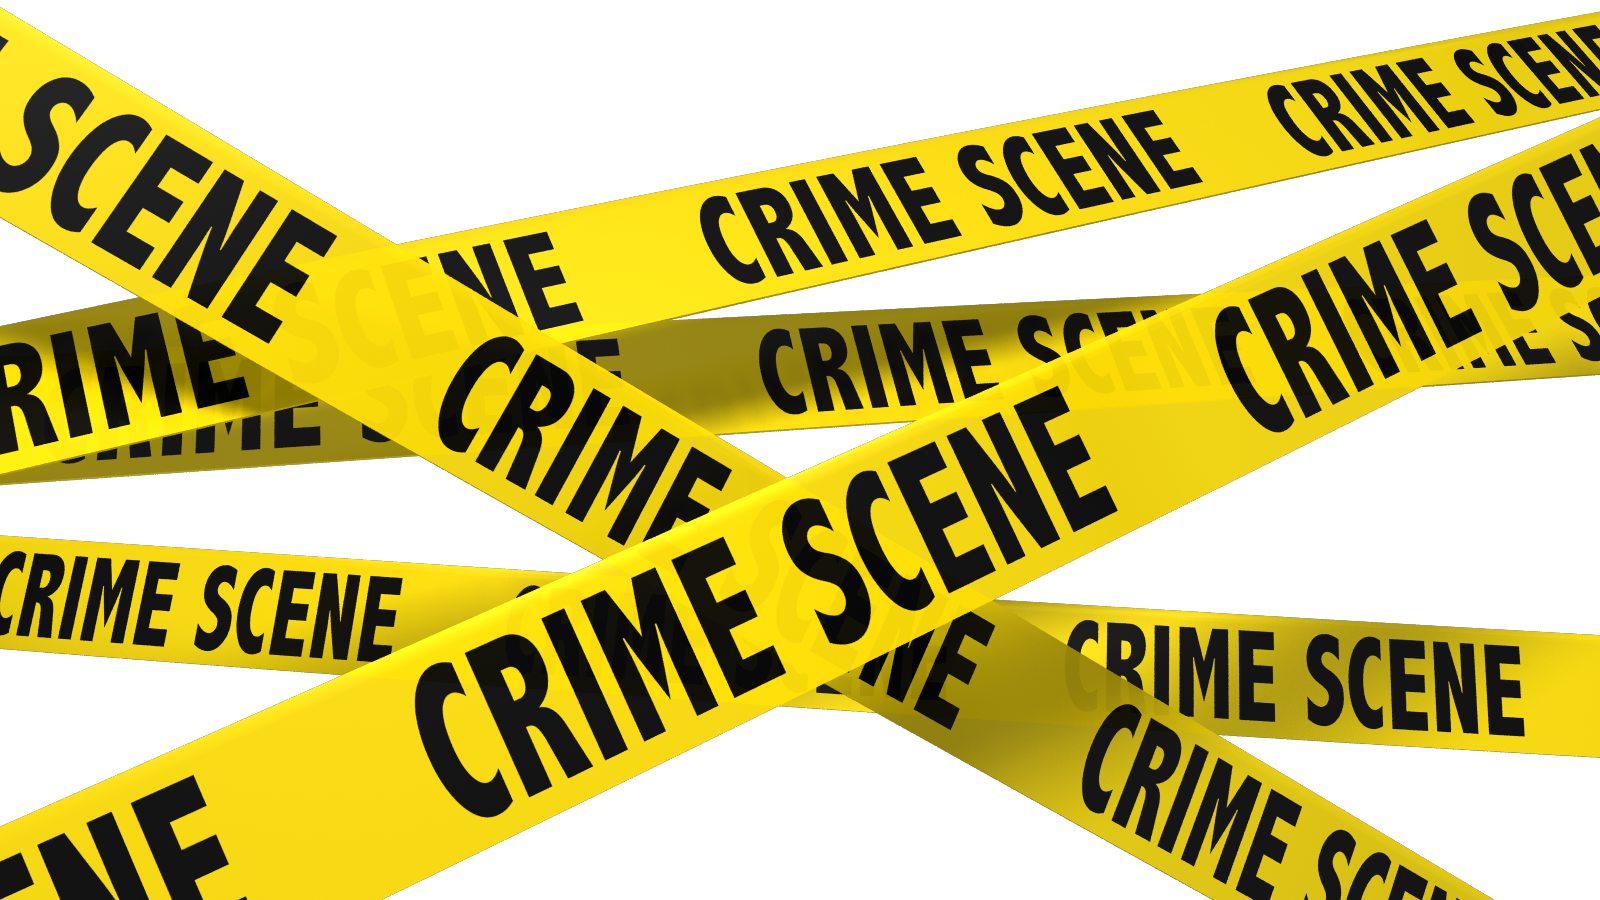 Police tape png images. Teen clipart ordinary person